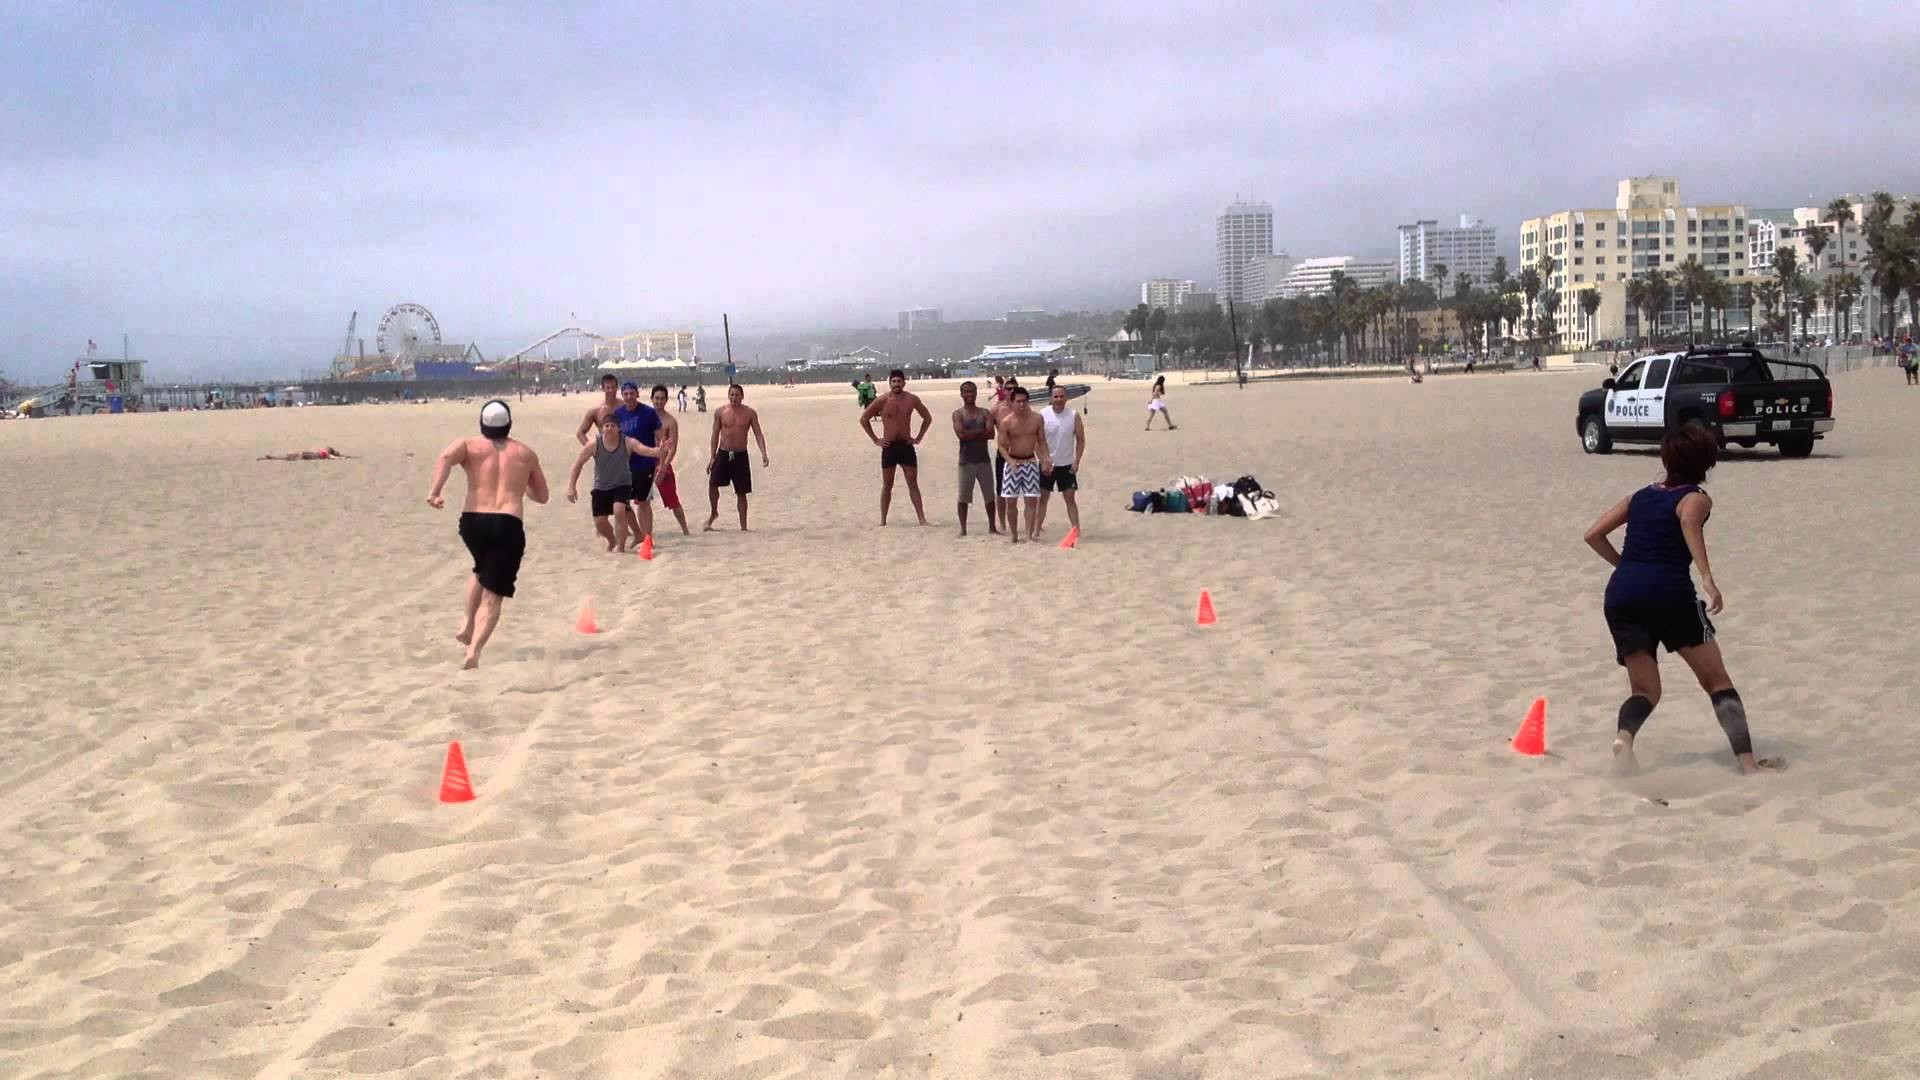 Res: 1920x1080, Santa Monica Beach Boot Camp Fun Sand Relay Group Fitness - Saori Fitness